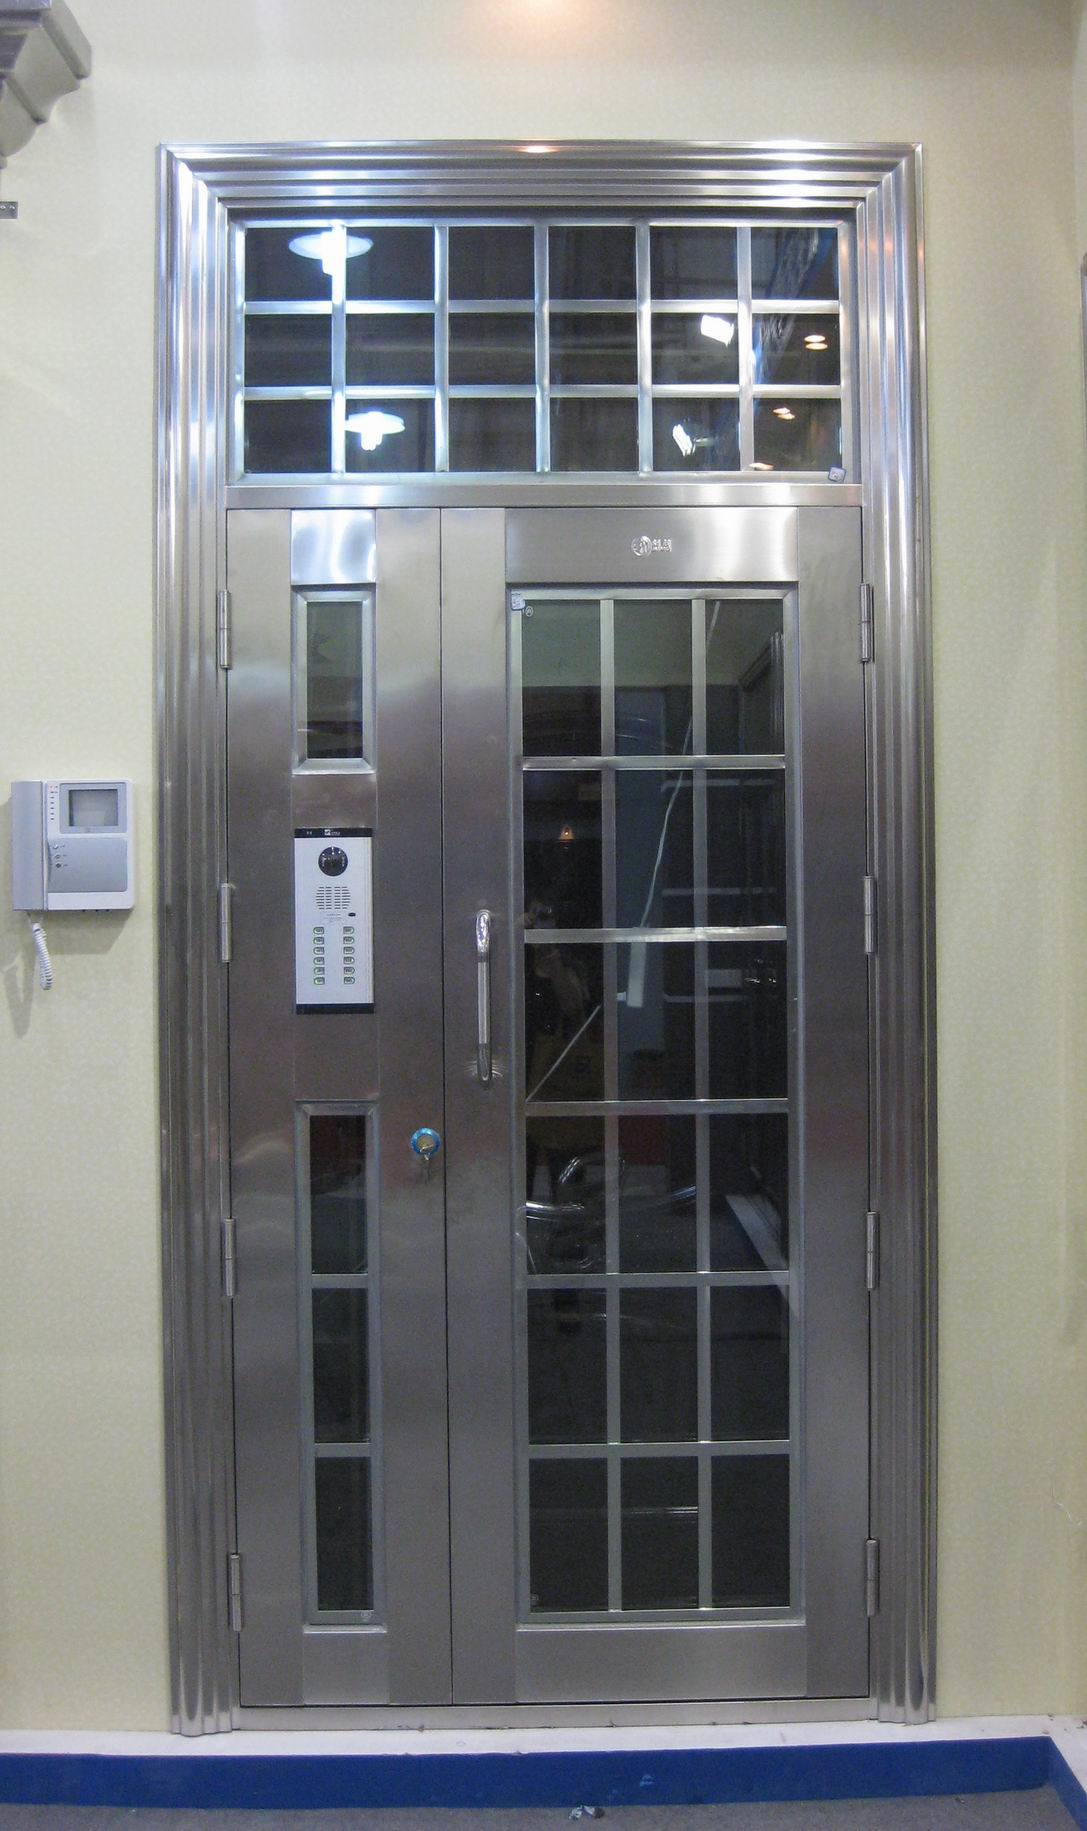 China stainless steel doors afol s5022 china security for Metal entry doors